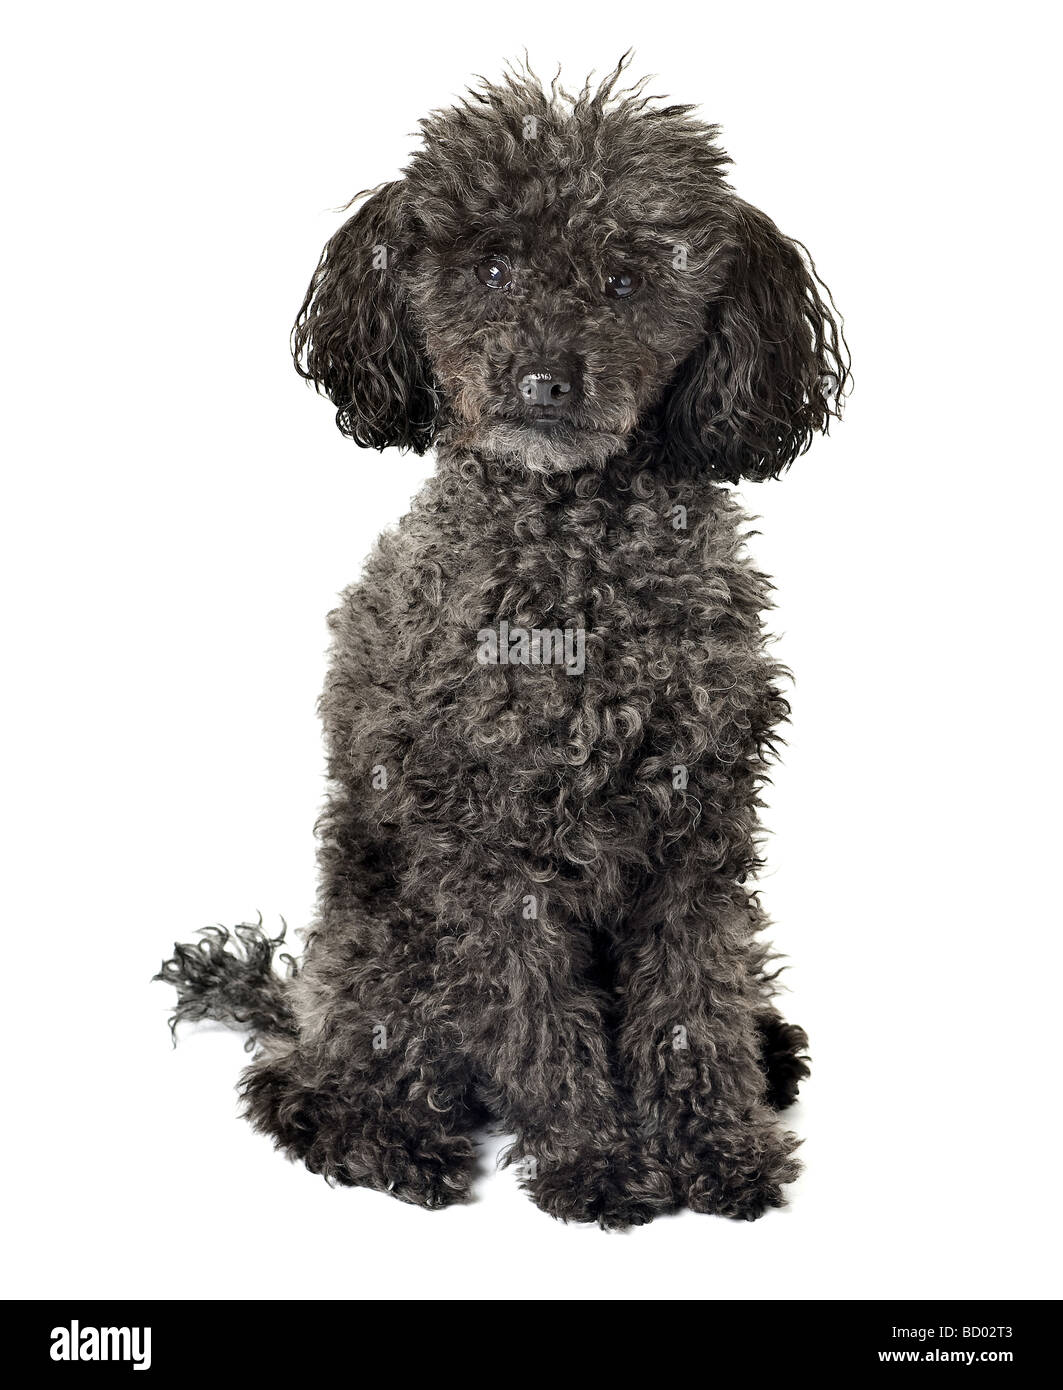 Black Teacup Poodle : black, teacup, poodle, Poodle, Black, Resolution, Stock, Photography, Images, Alamy